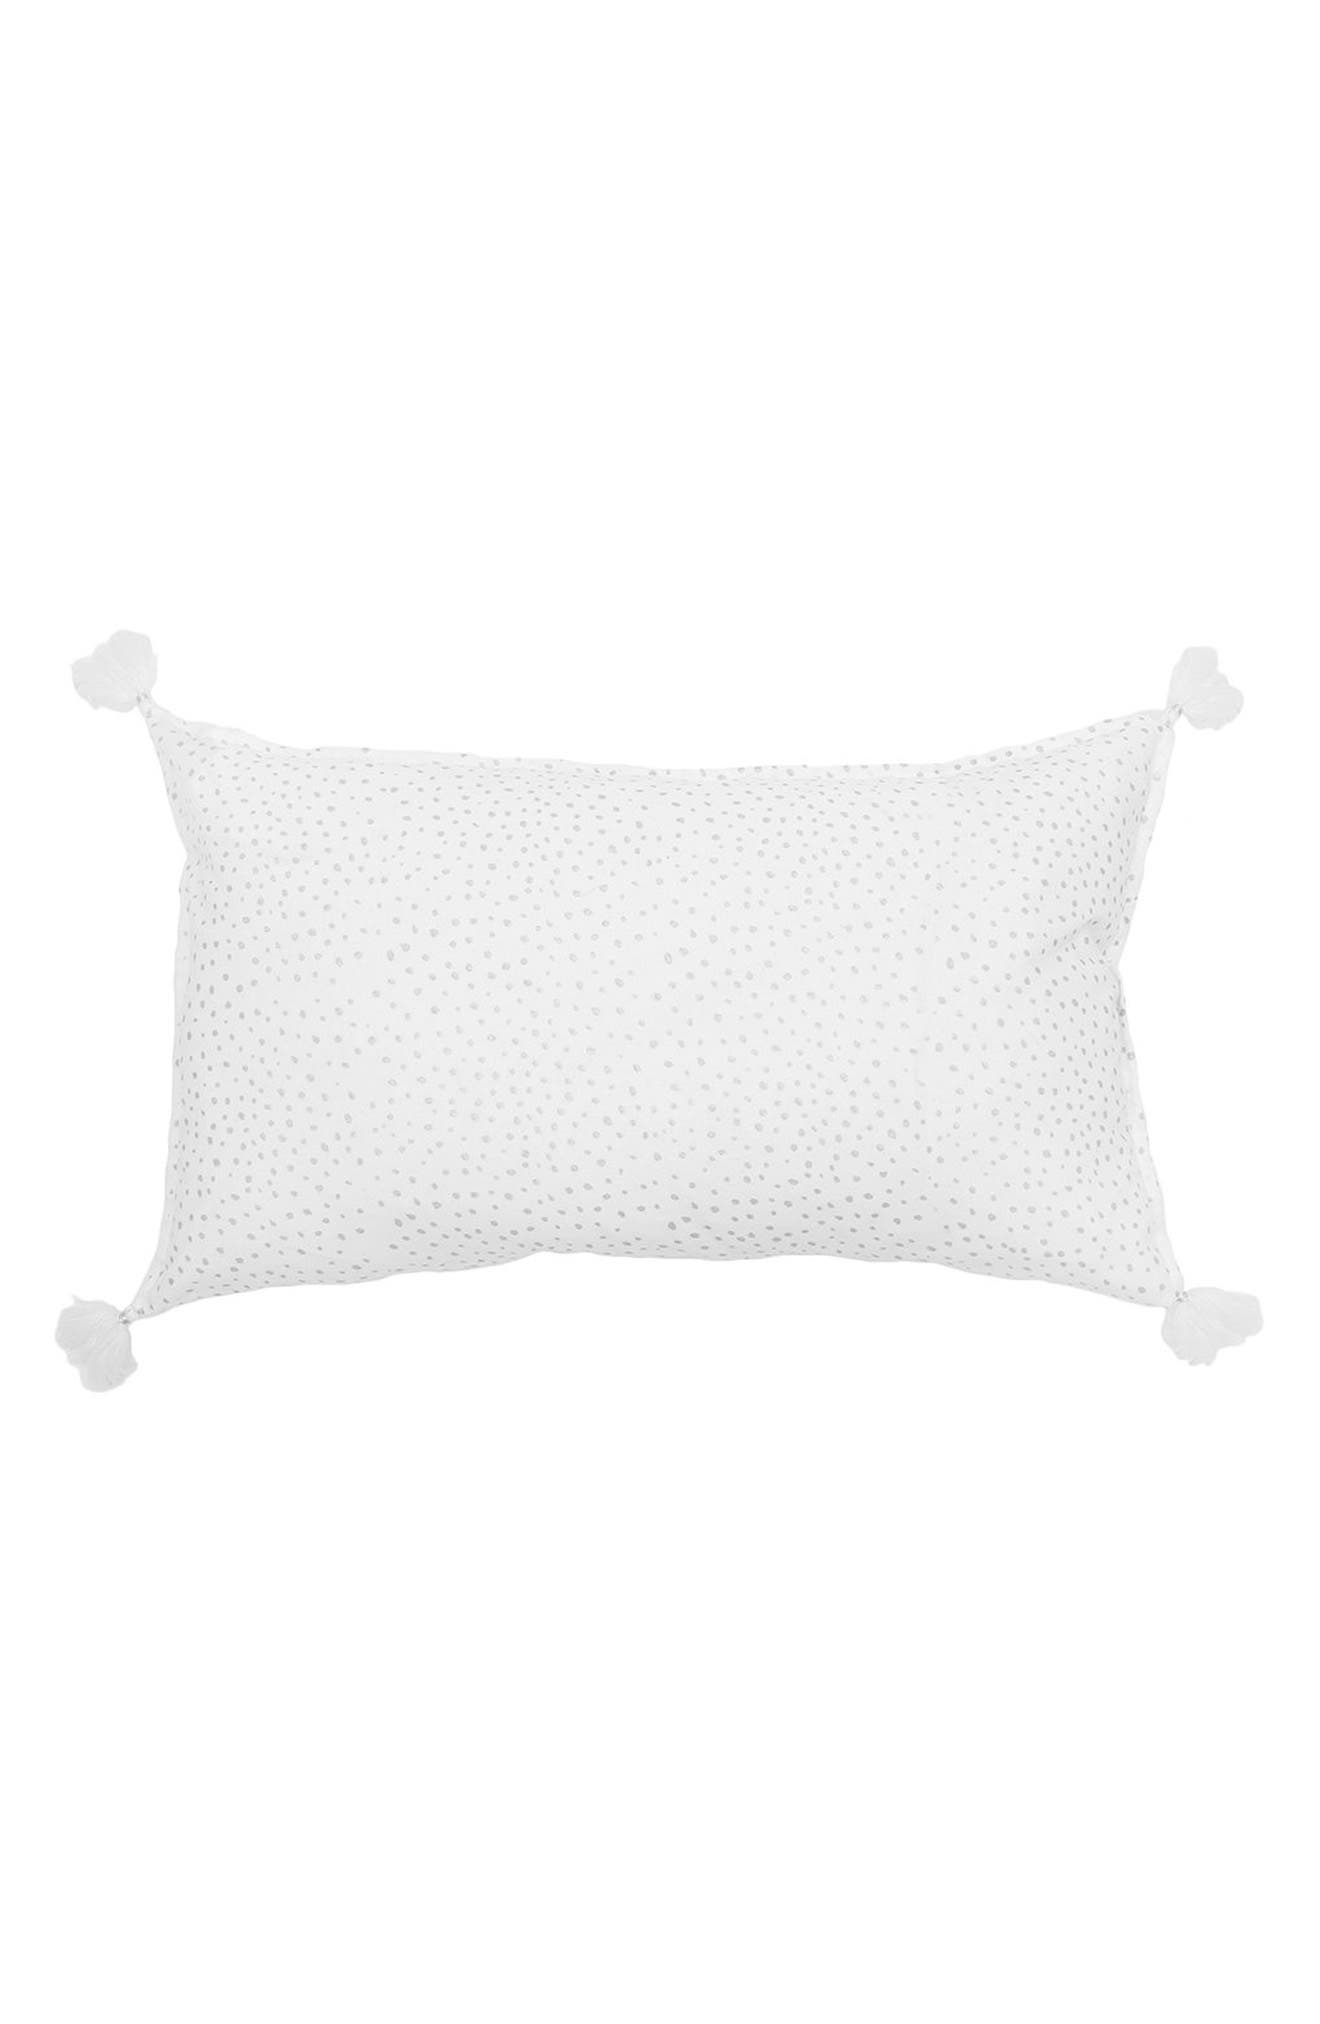 Dot Accent Pillow,                             Main thumbnail 1, color,                             SILVER